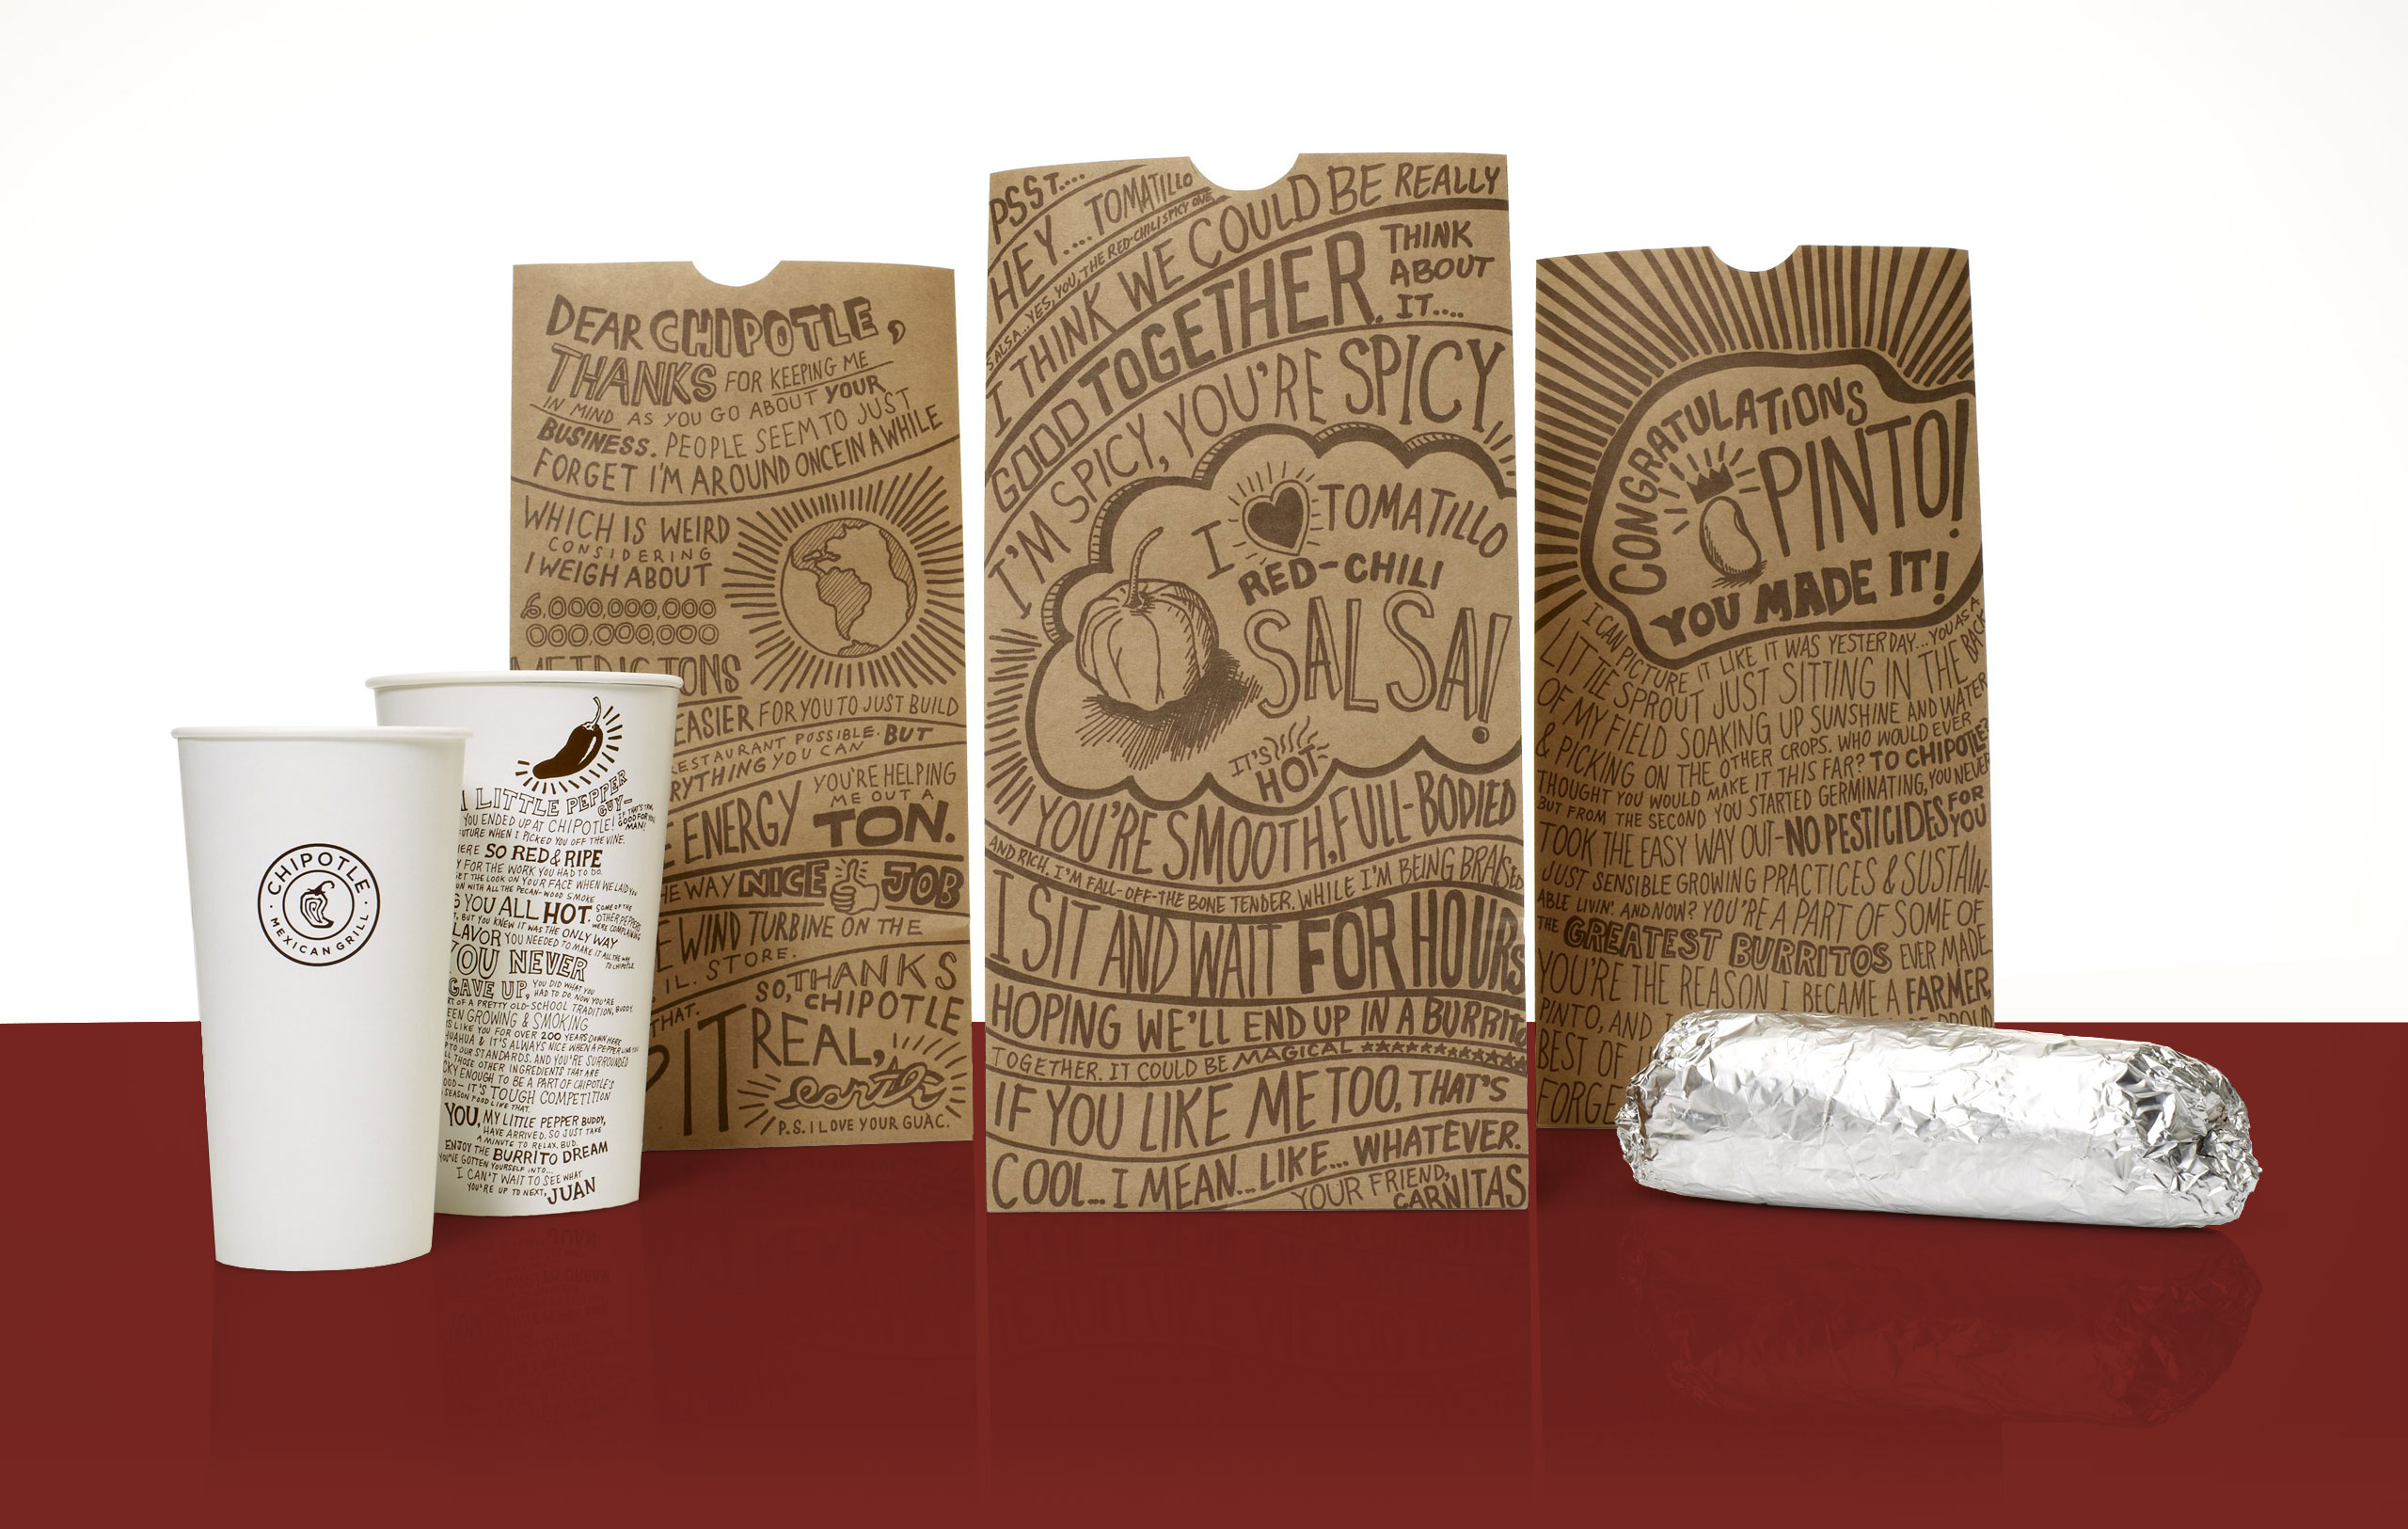 chipotlepackaging_asset2